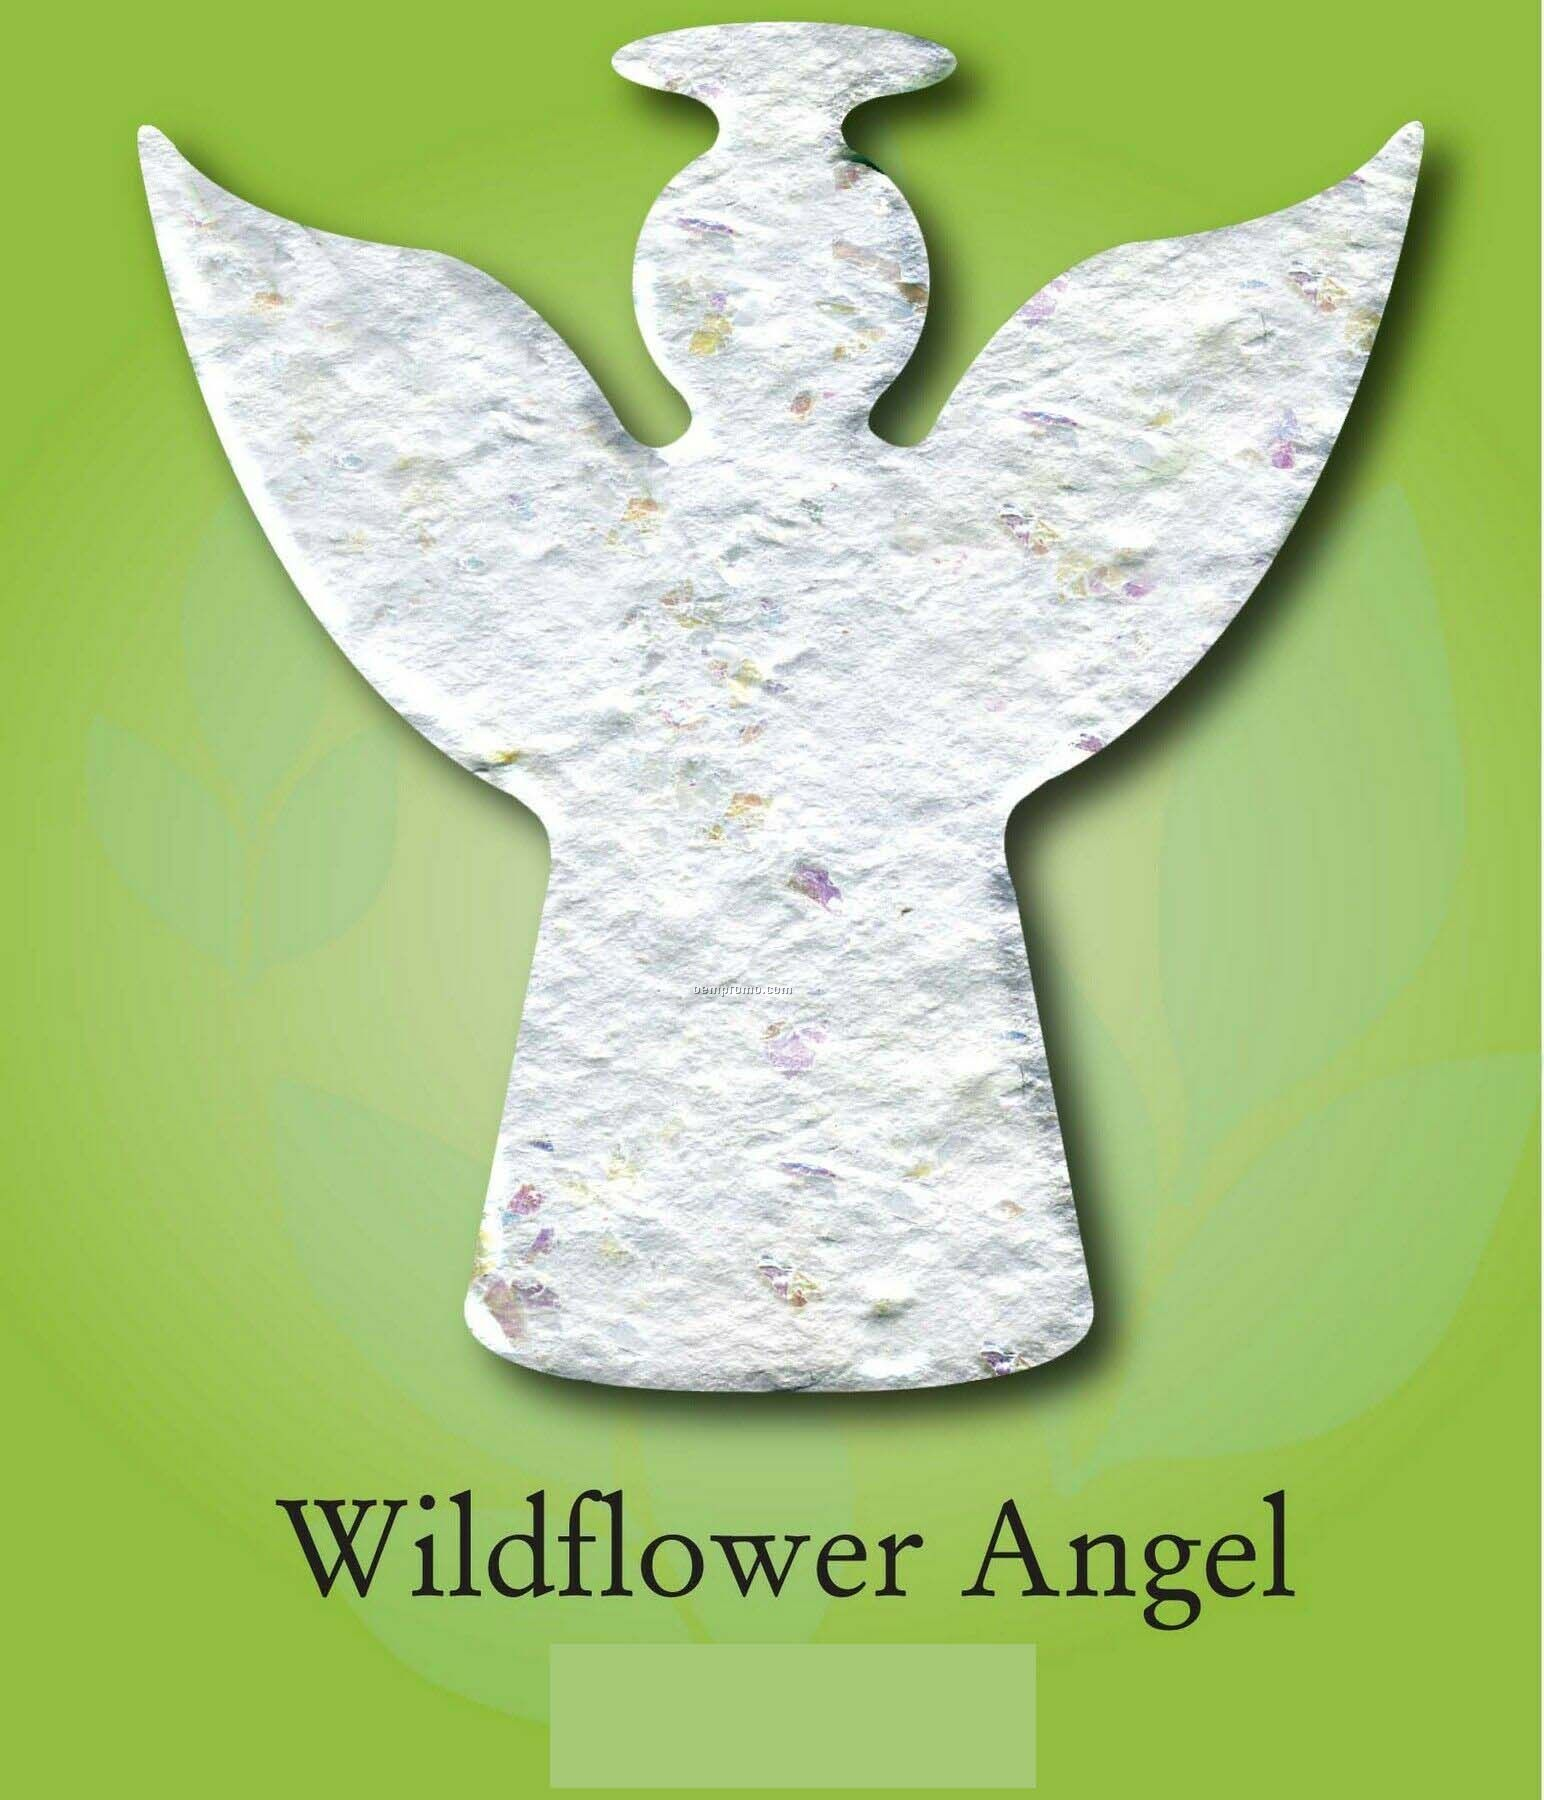 Wildflower Angel Ornament With Embedded Seed